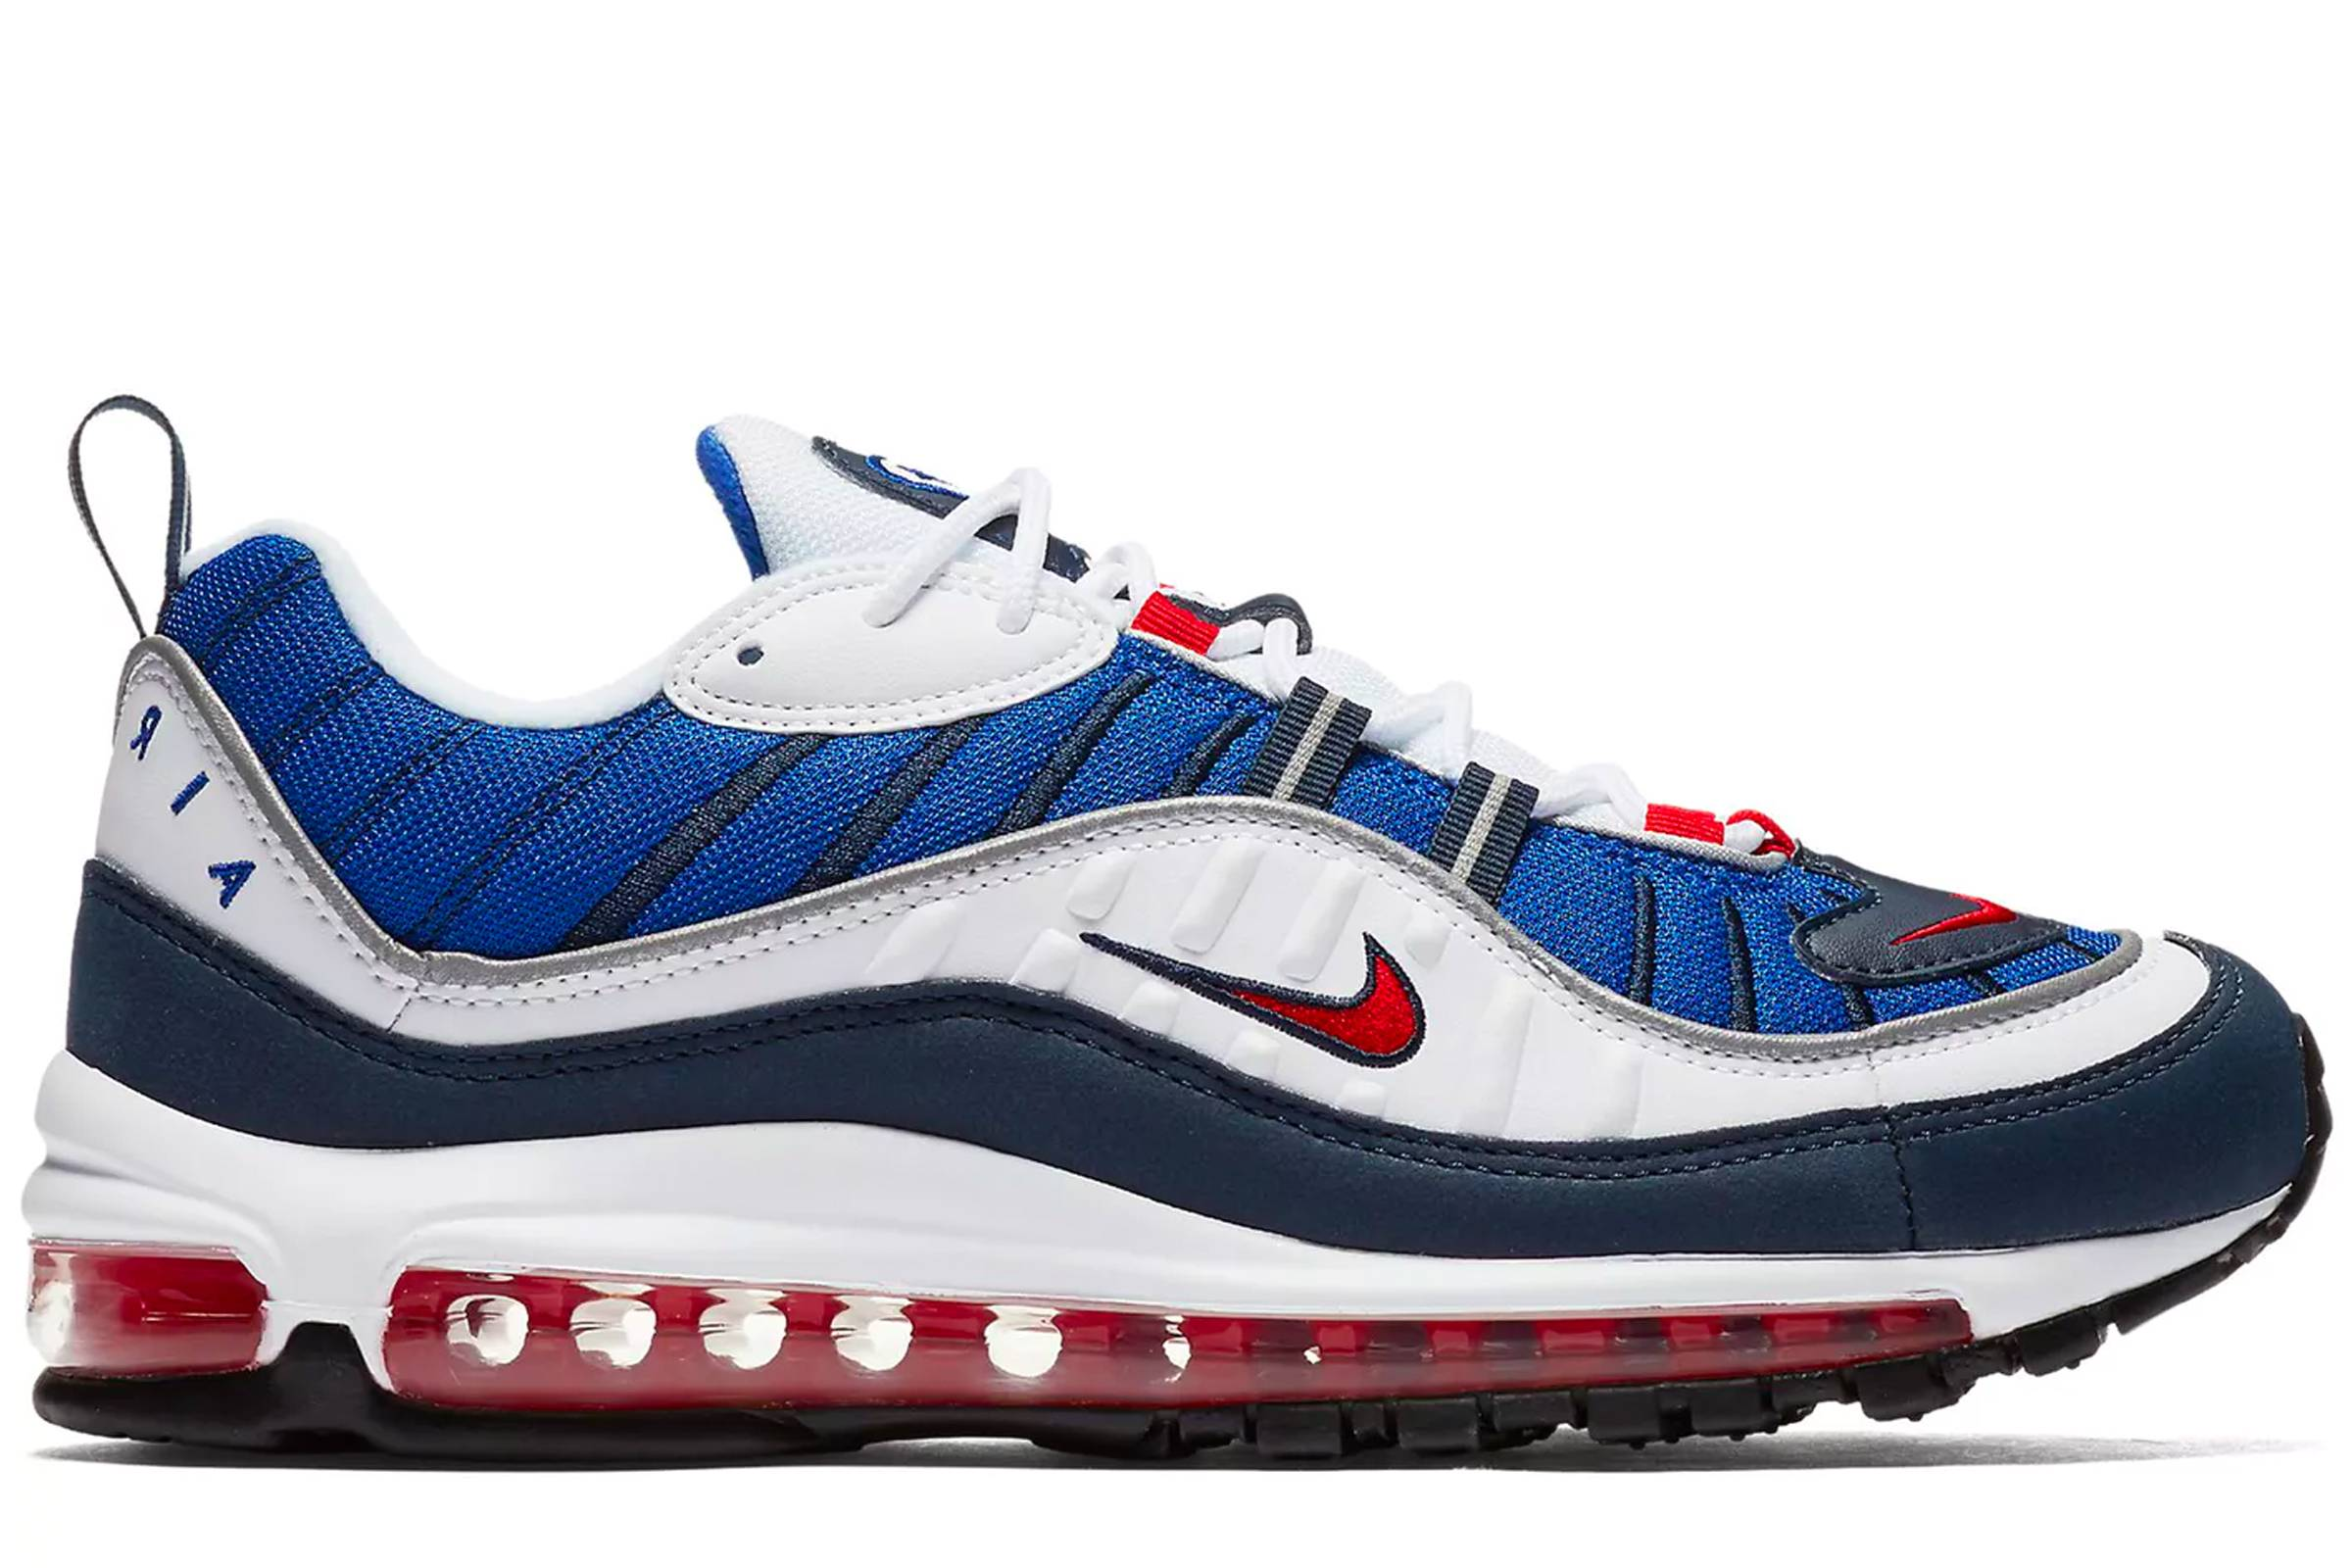 chaussures de sport e1faf f57c5 Nike's Problem Child: A History of the Air Max 98 | Grailed